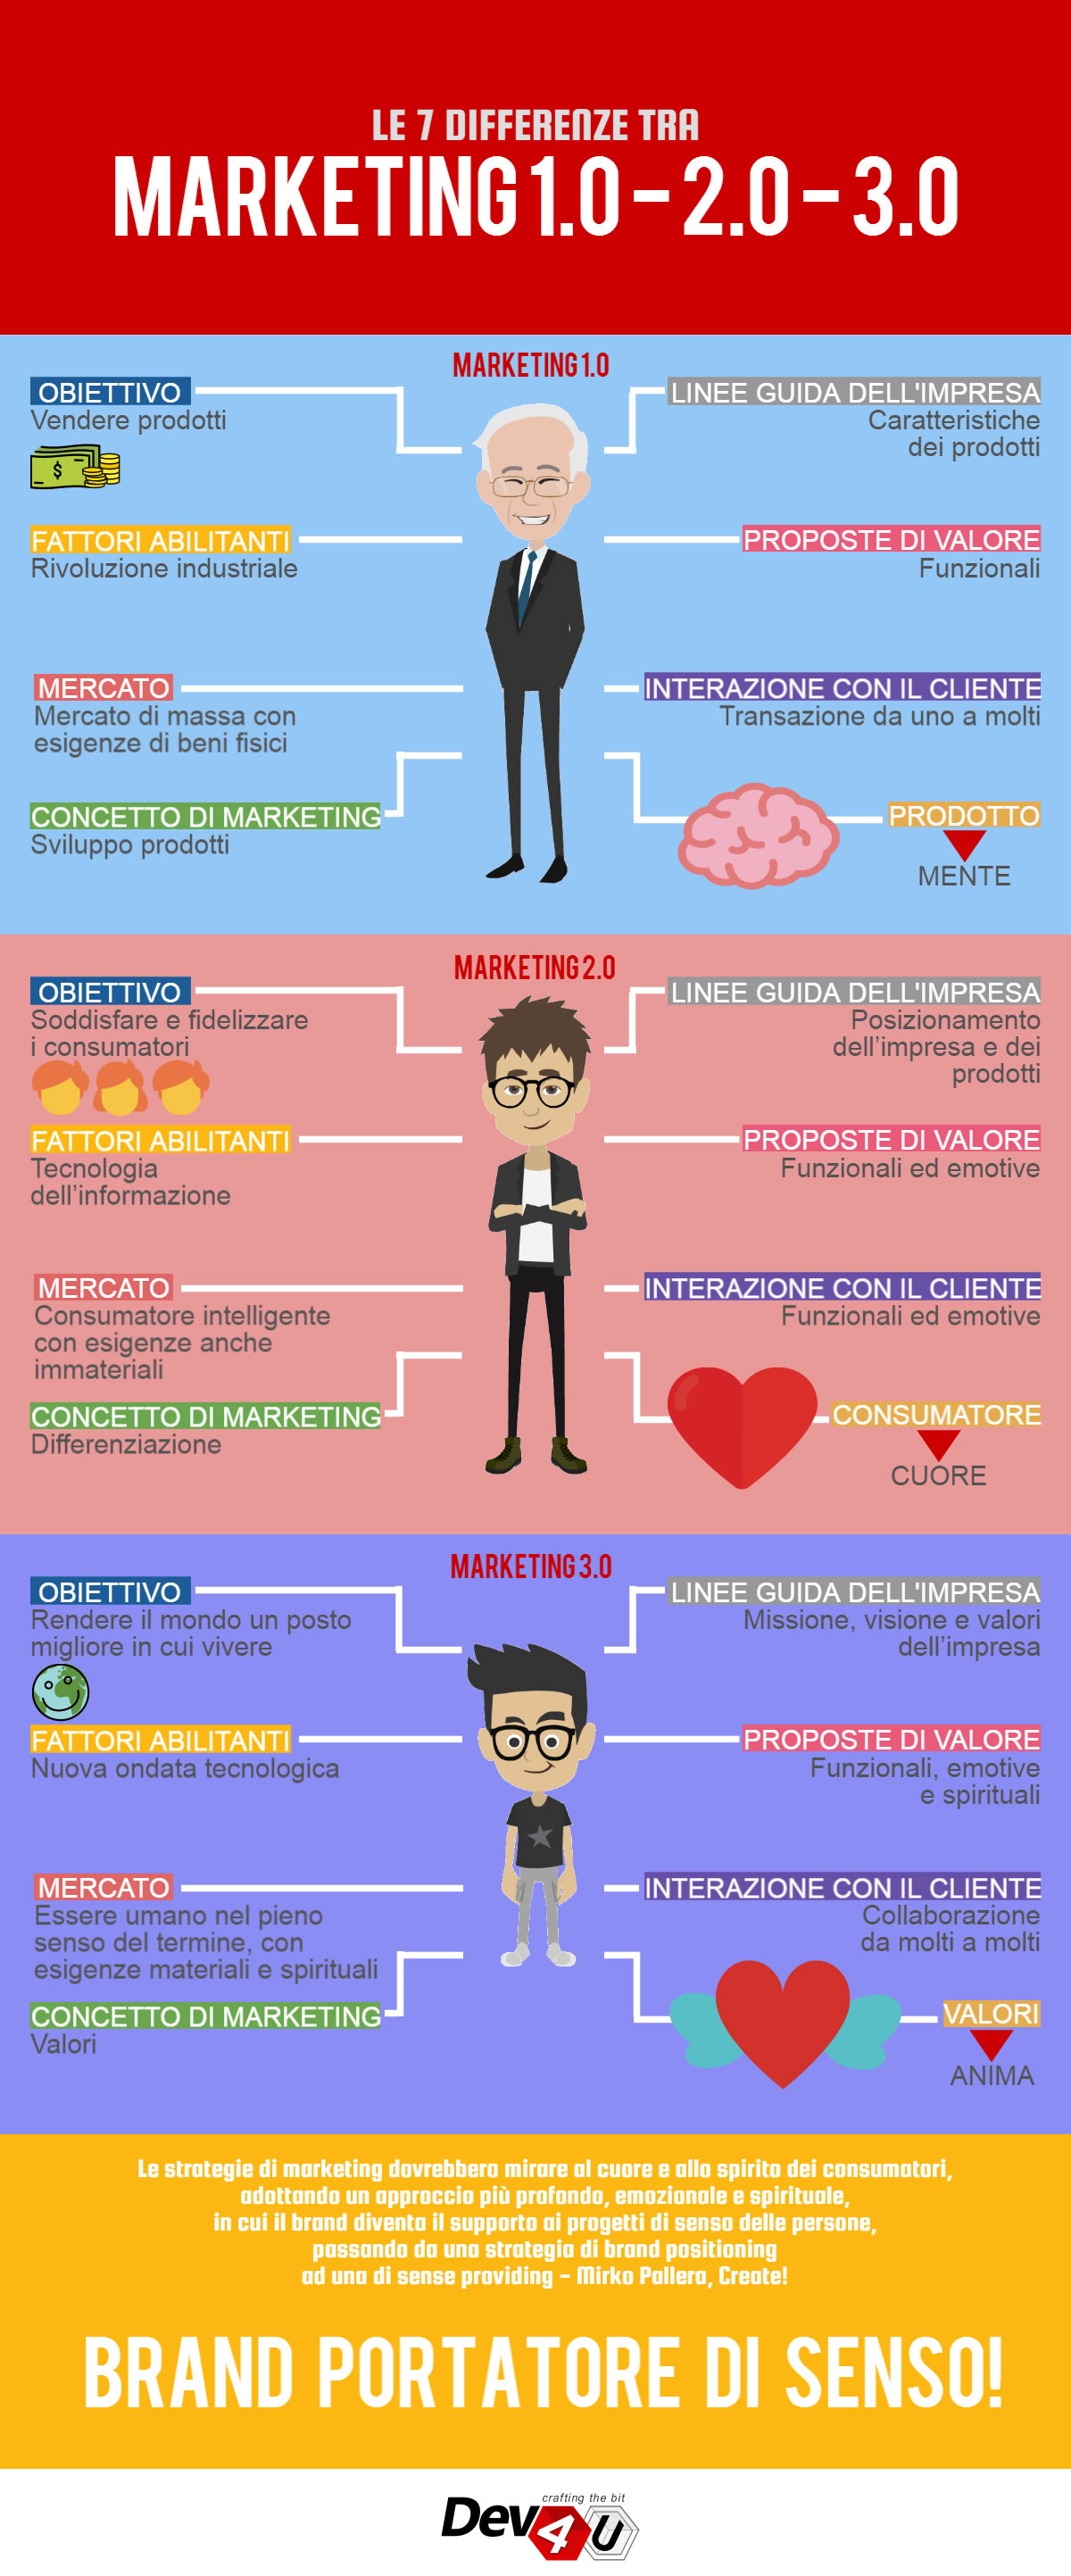 Le 7 differenze tra Marketing 1.0 - 2.0 - 3.0 [INFOGRAFICA]